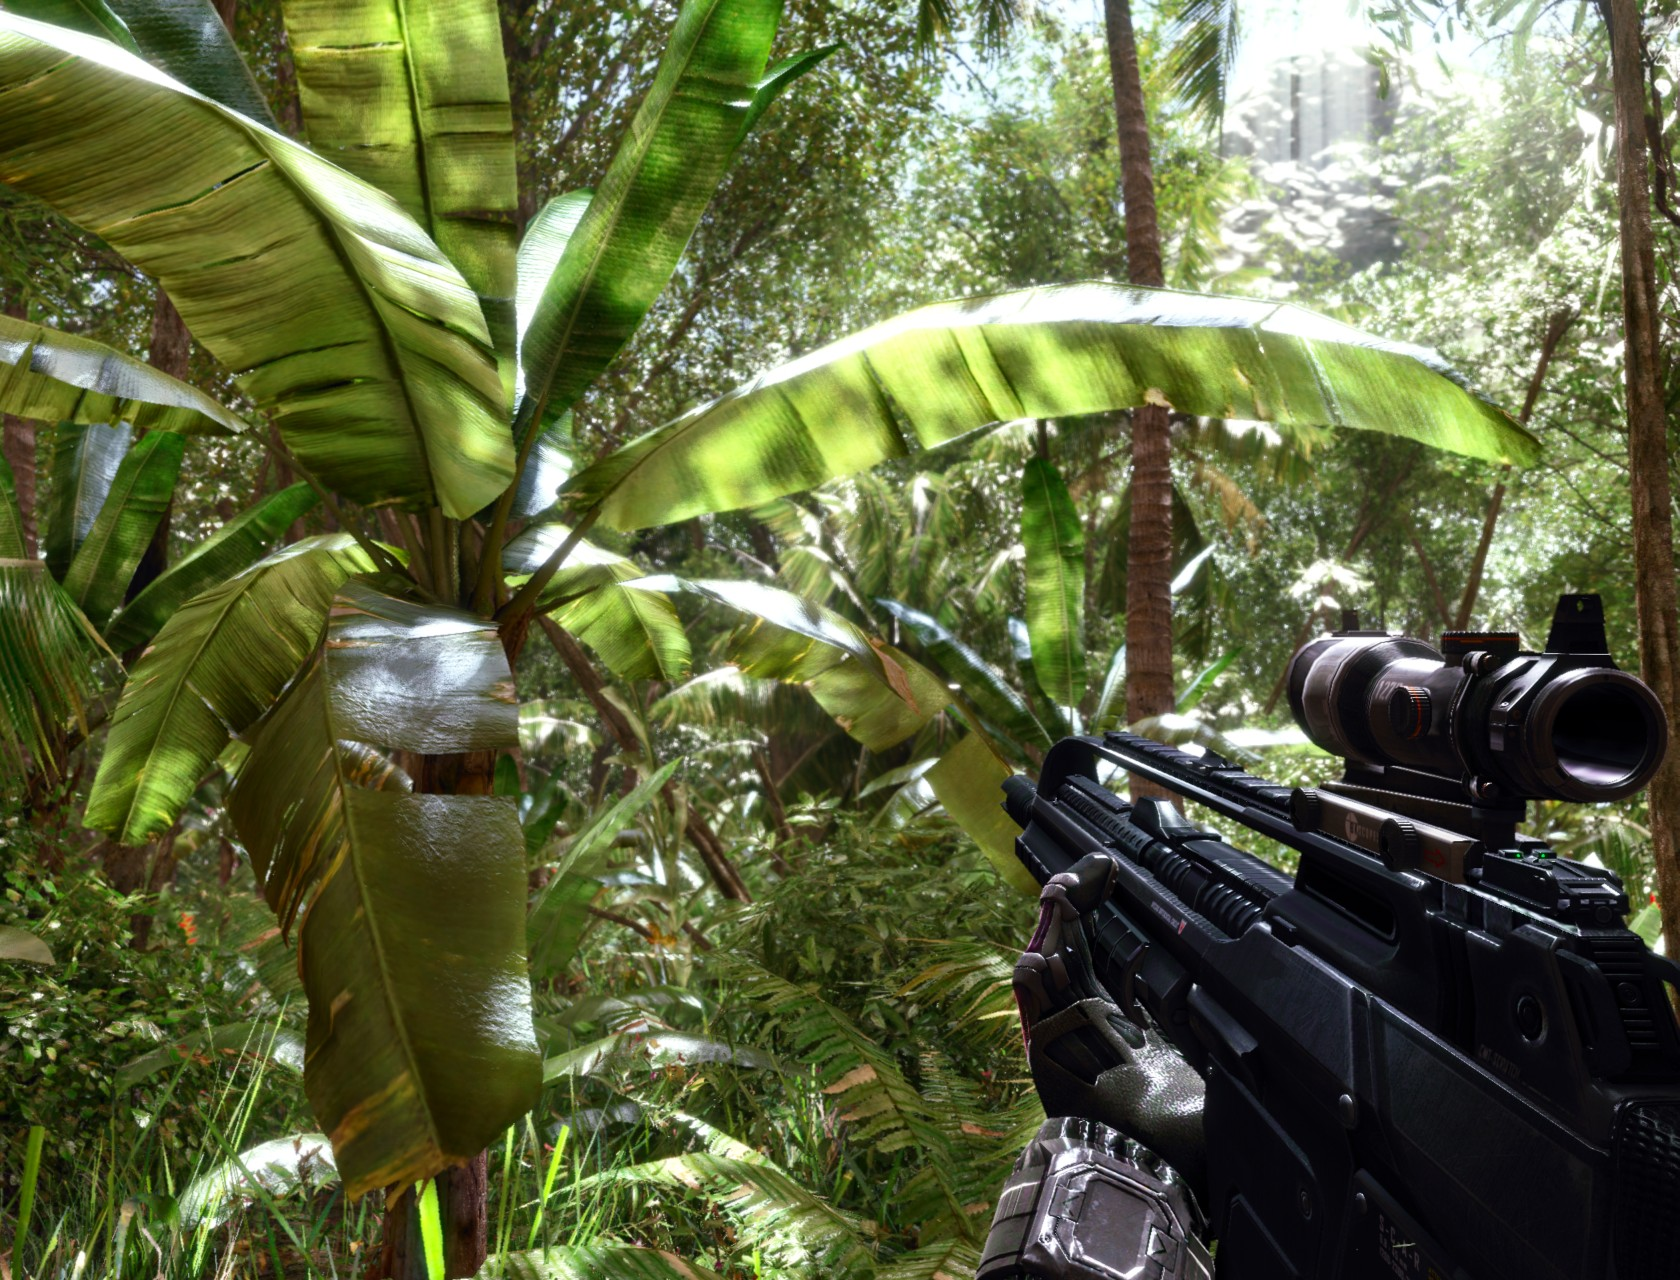 Crysis Jungle Snapshot